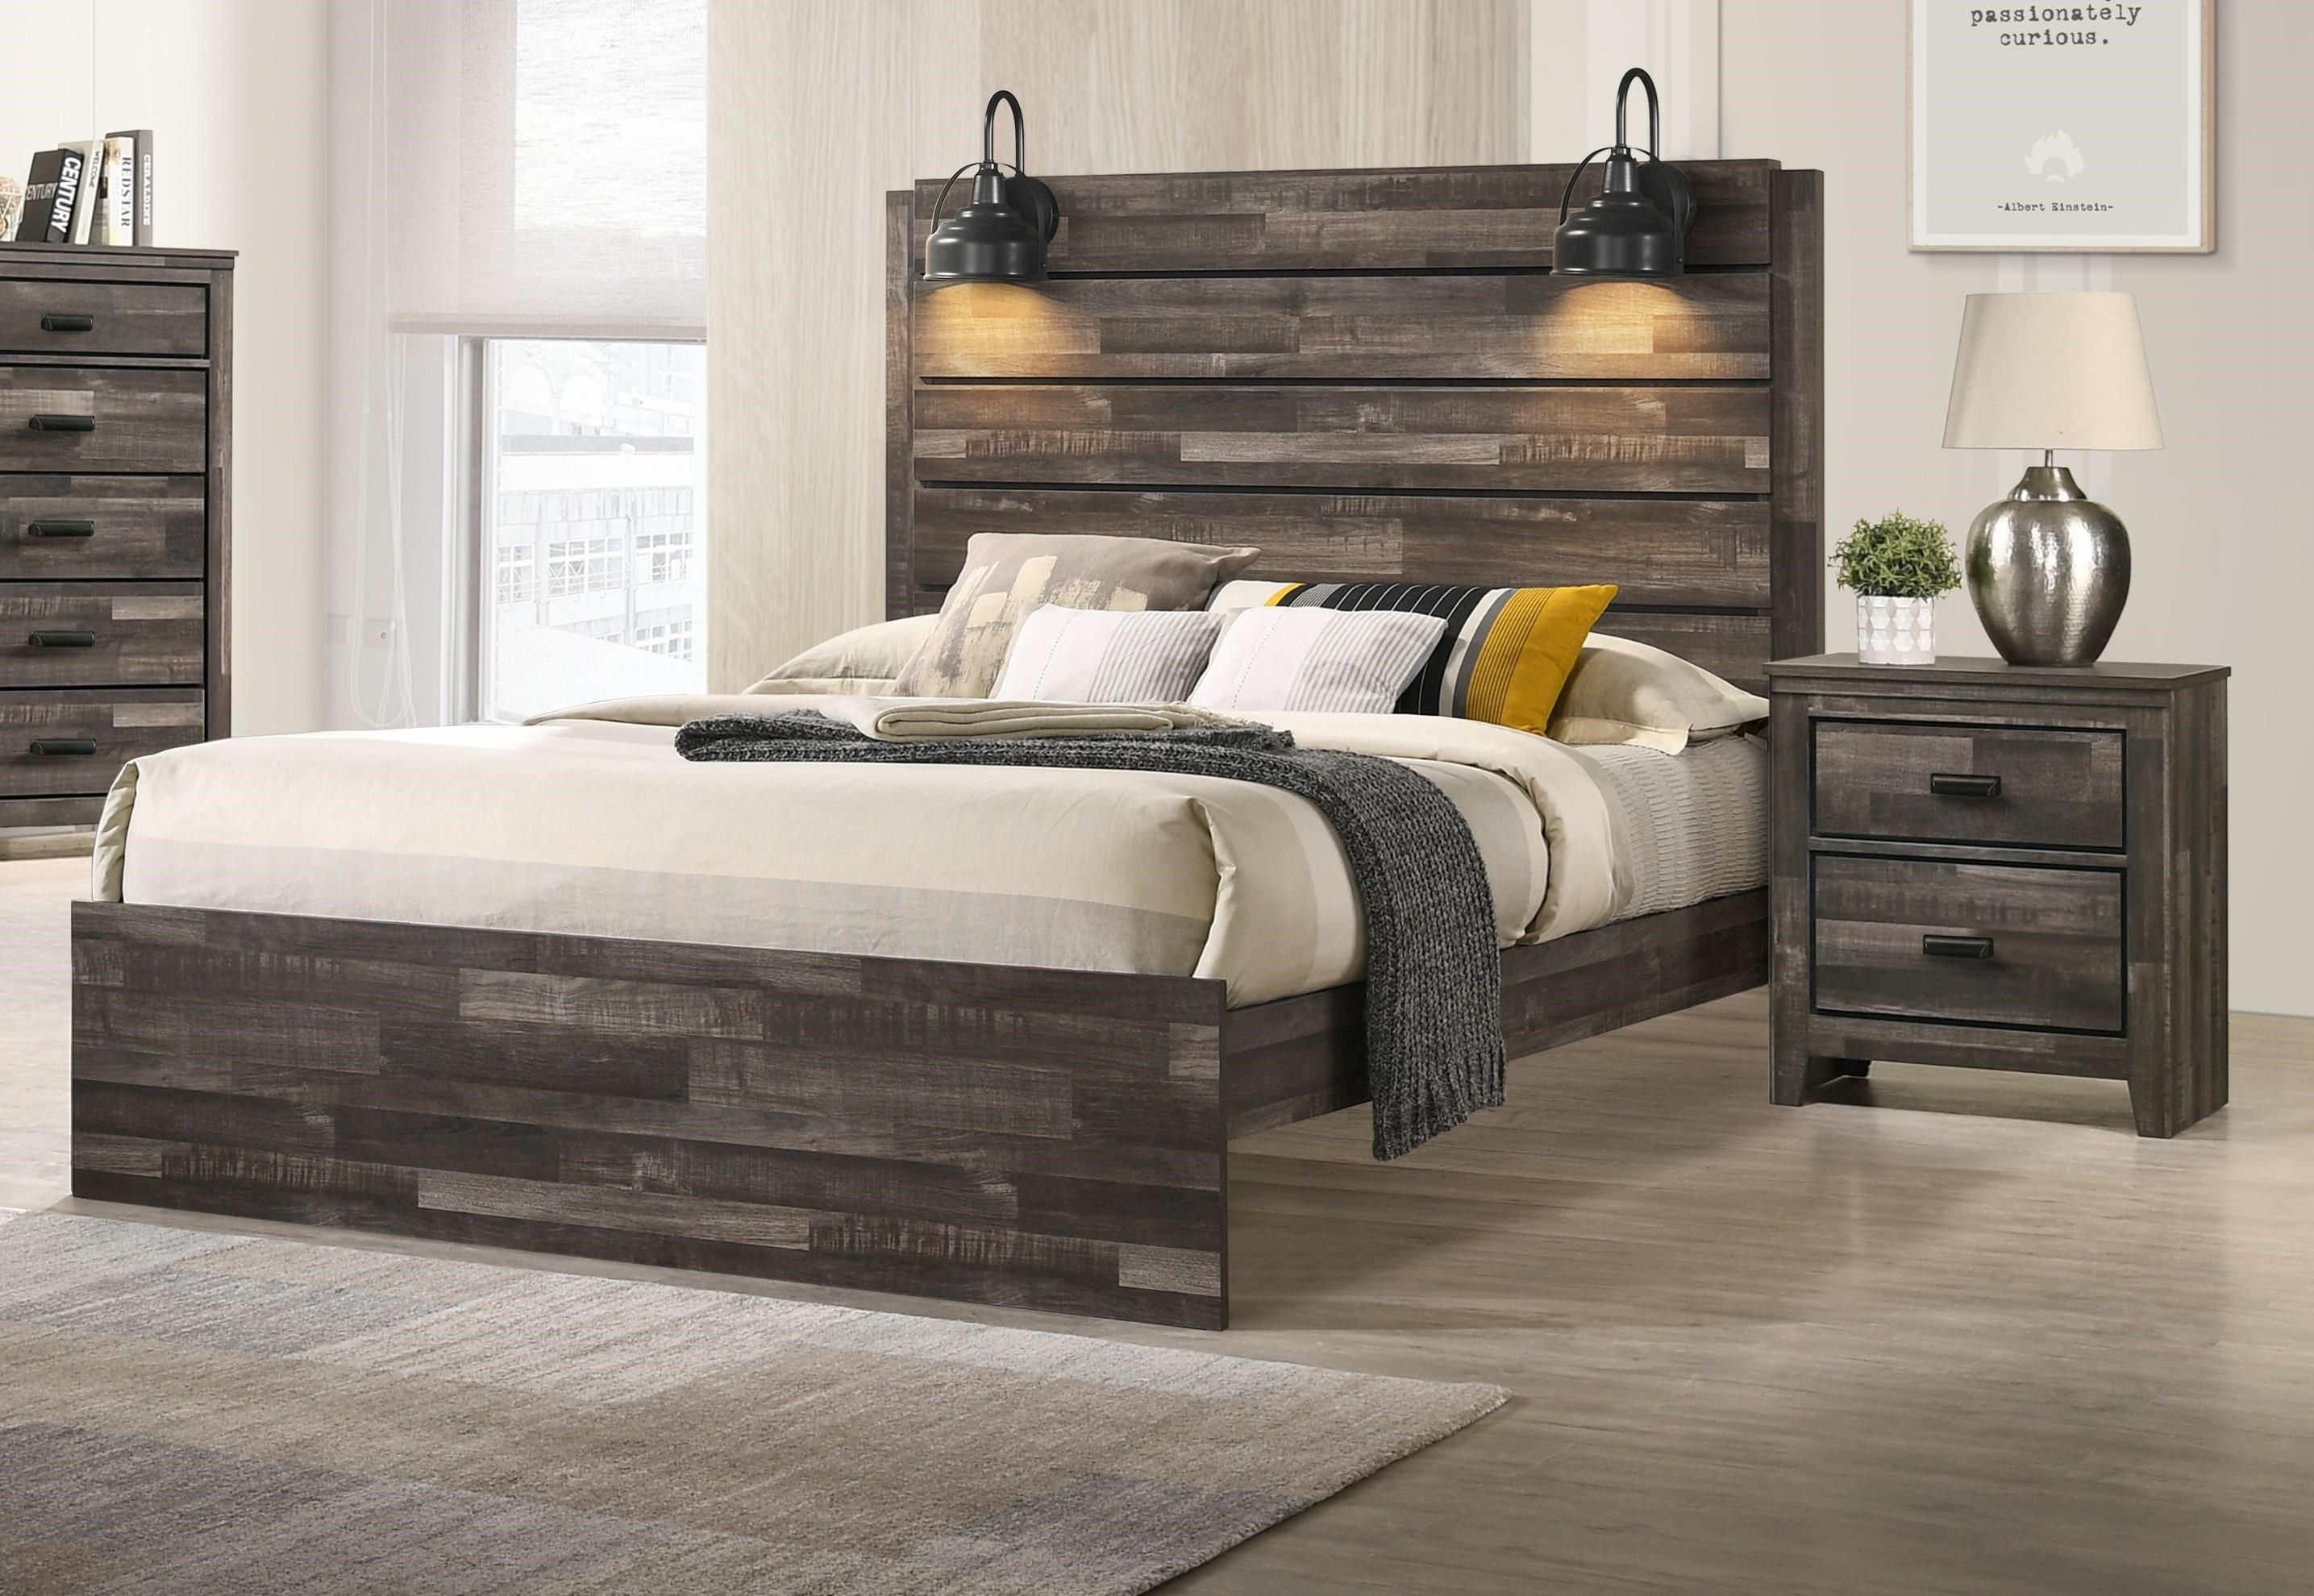 B6800 CARTER King Size Lighted Bed by Crown Mark at Furniture Fair - North Carolina